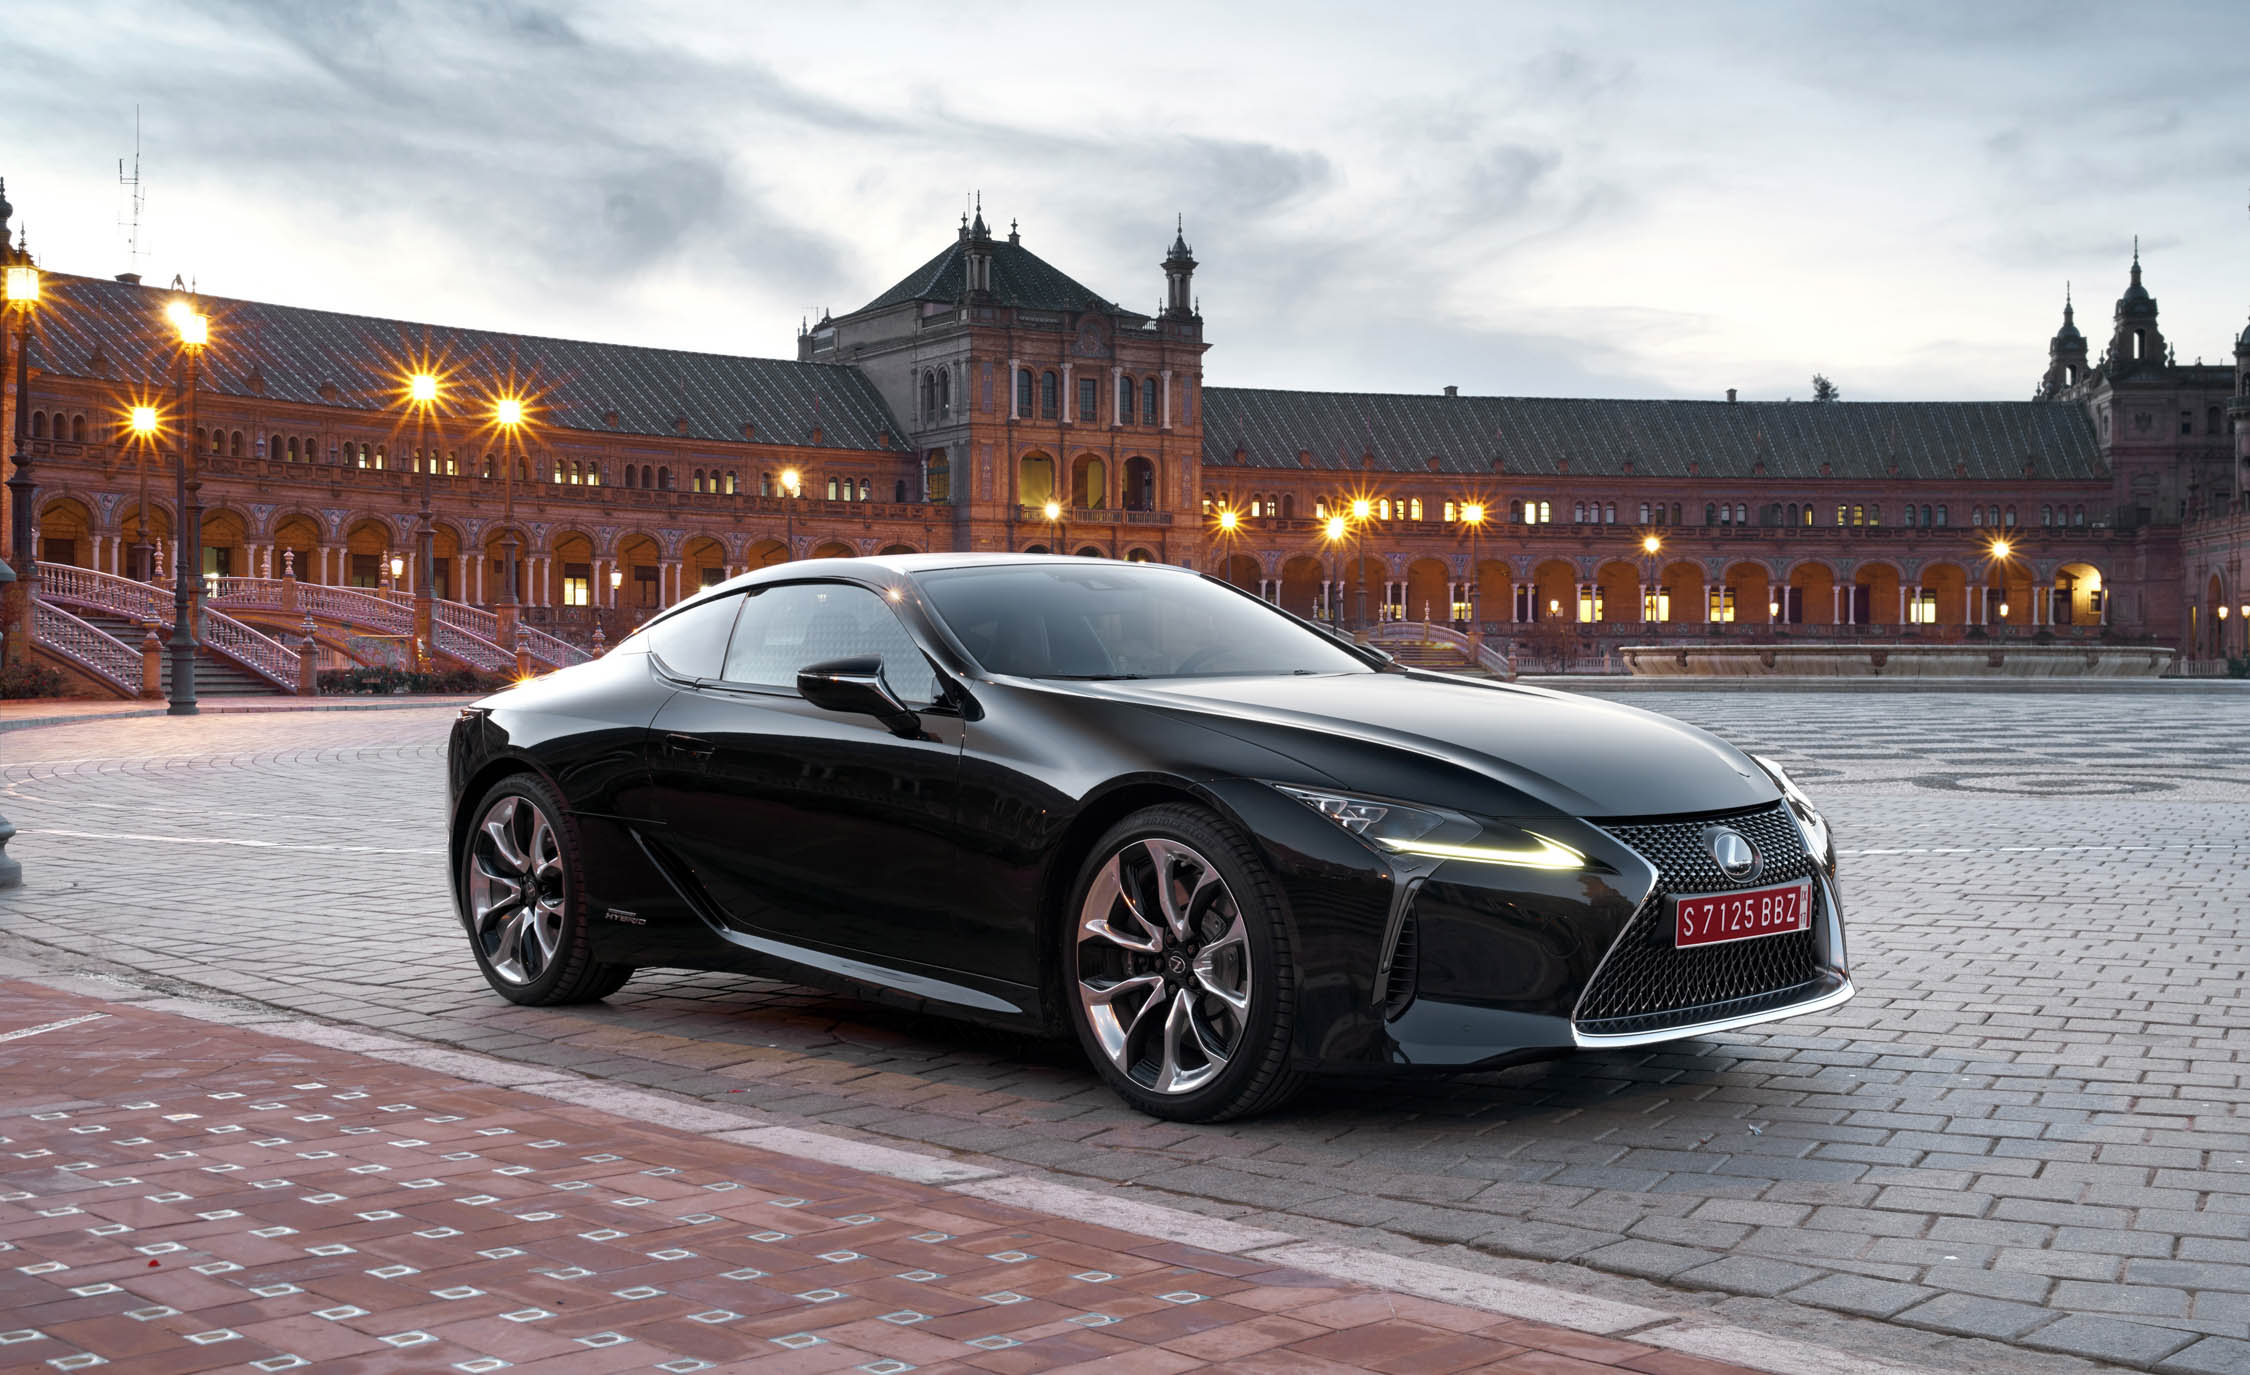 2018 Lexus Lc 500h Black Exterior (Photo 49 of 84)